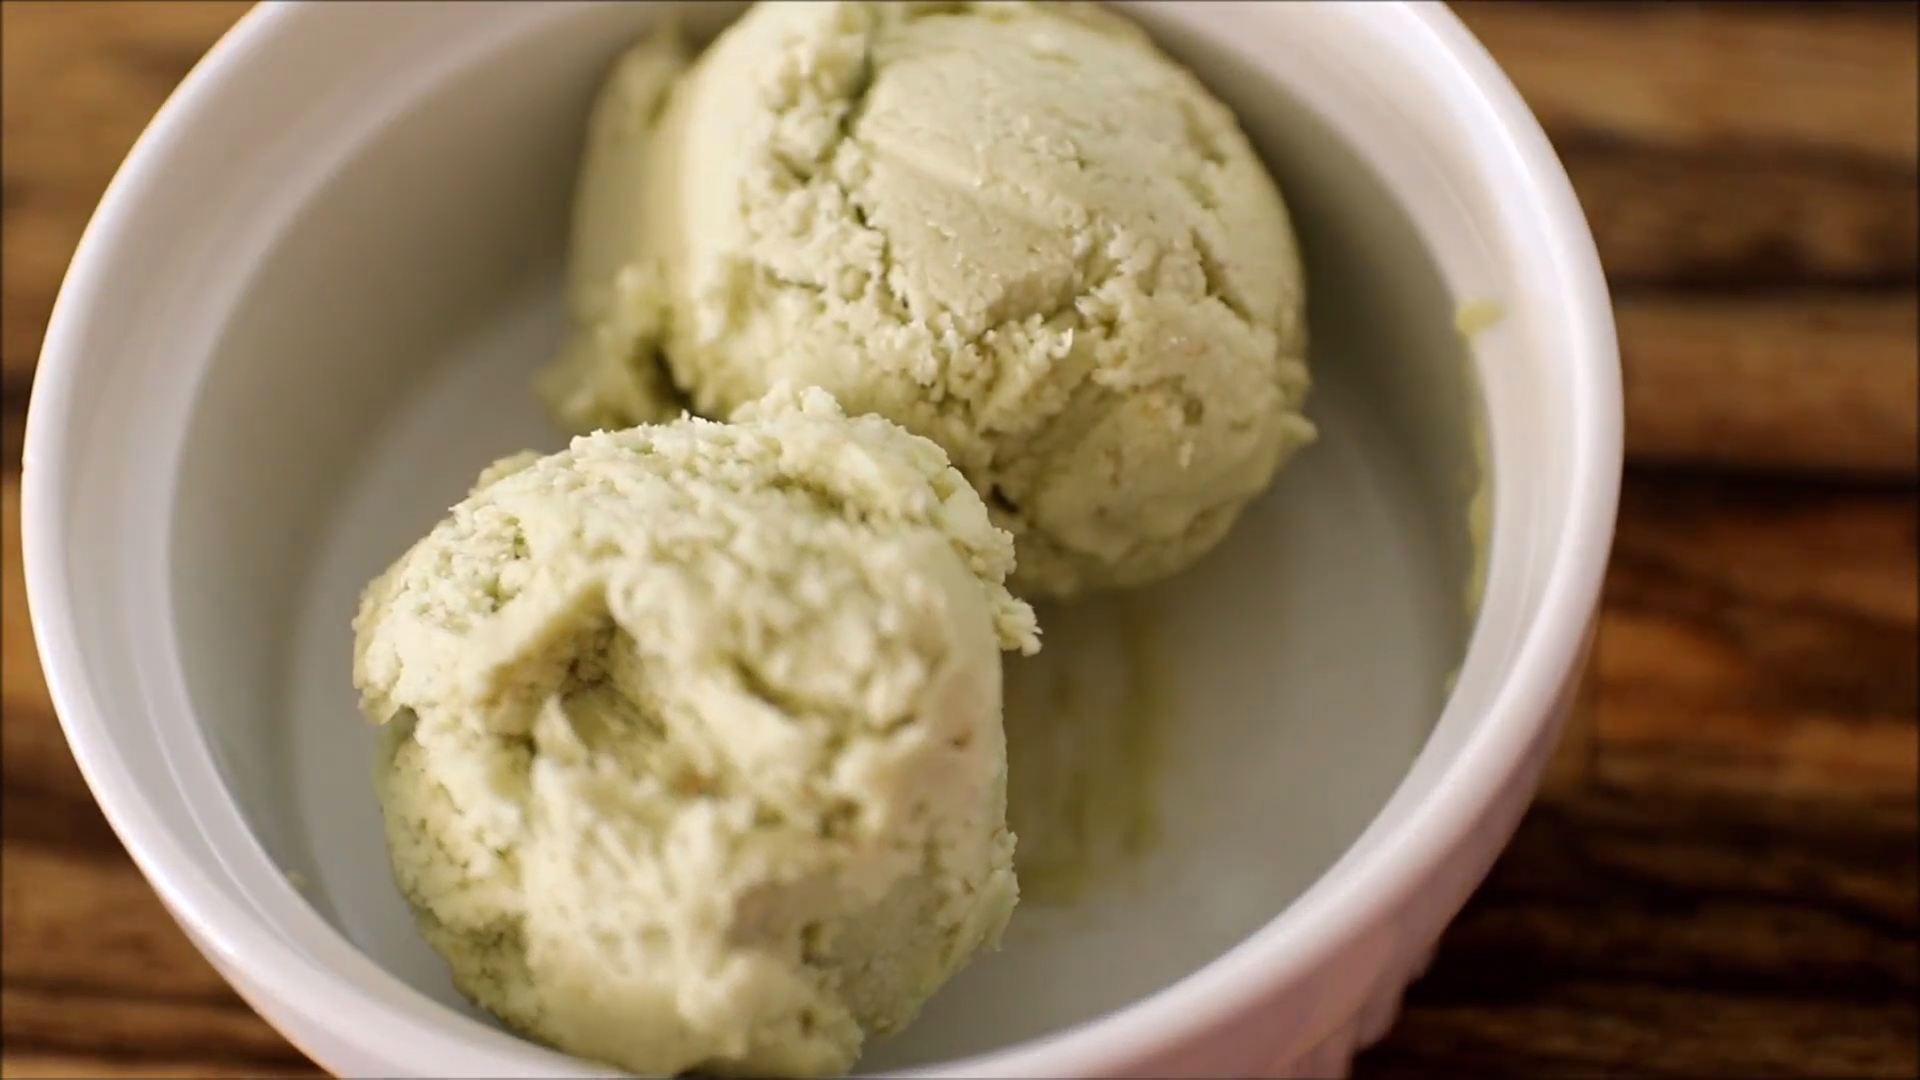 Photo of Avocado Ice Cream Recipe